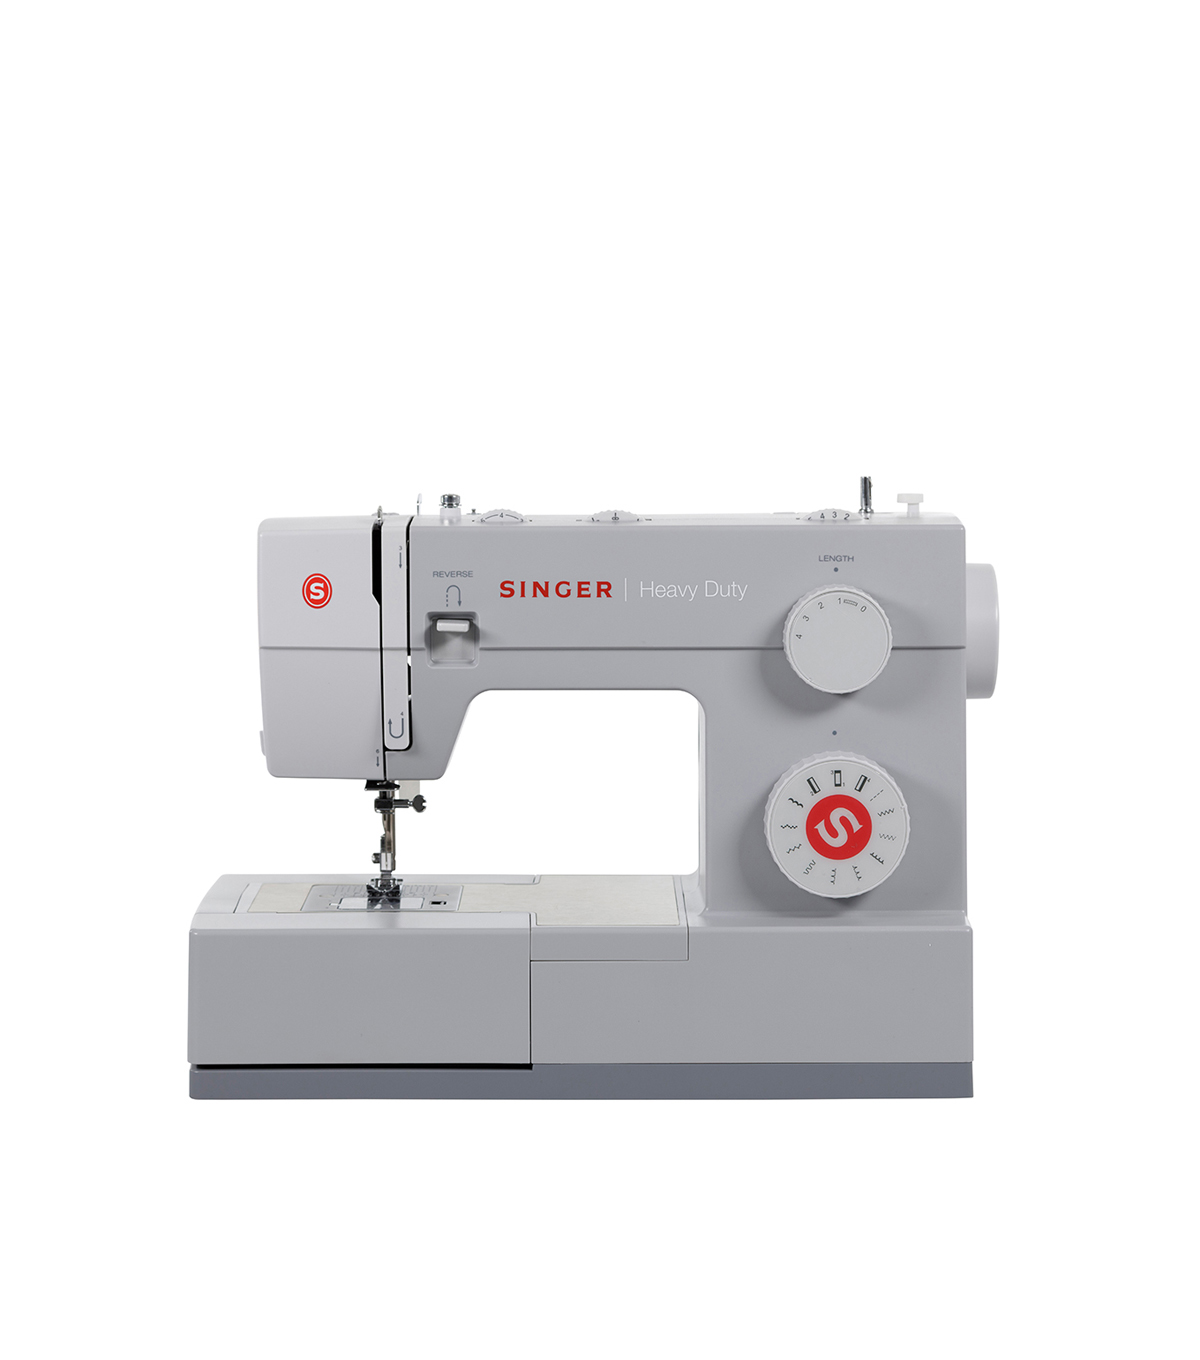 Singer 4411 Heavy Duty Sewing Machine | JOANN